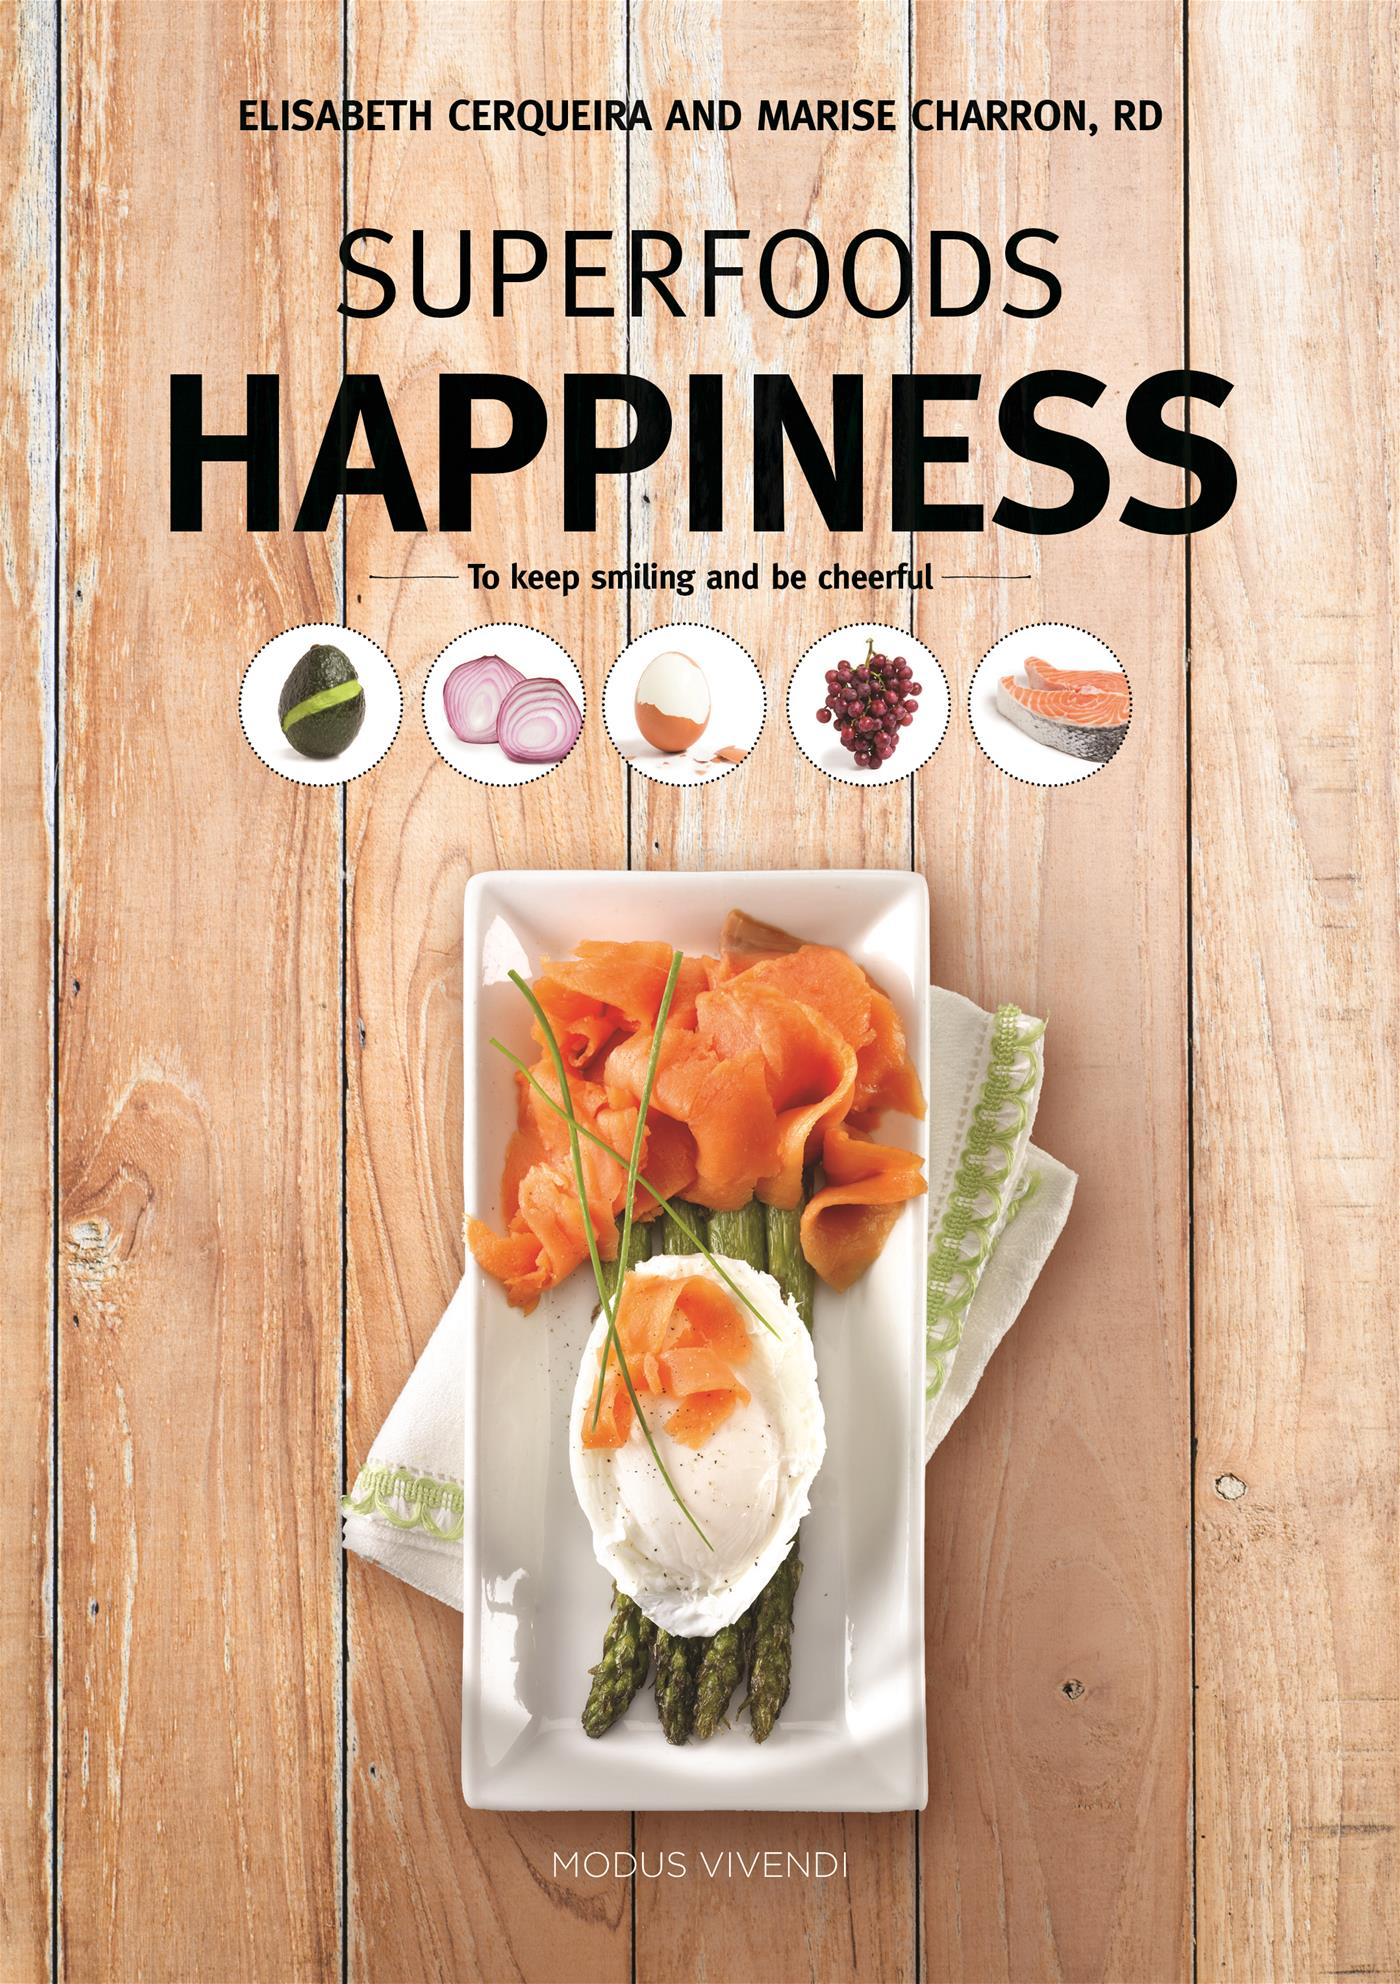 Superfoods - Happiness